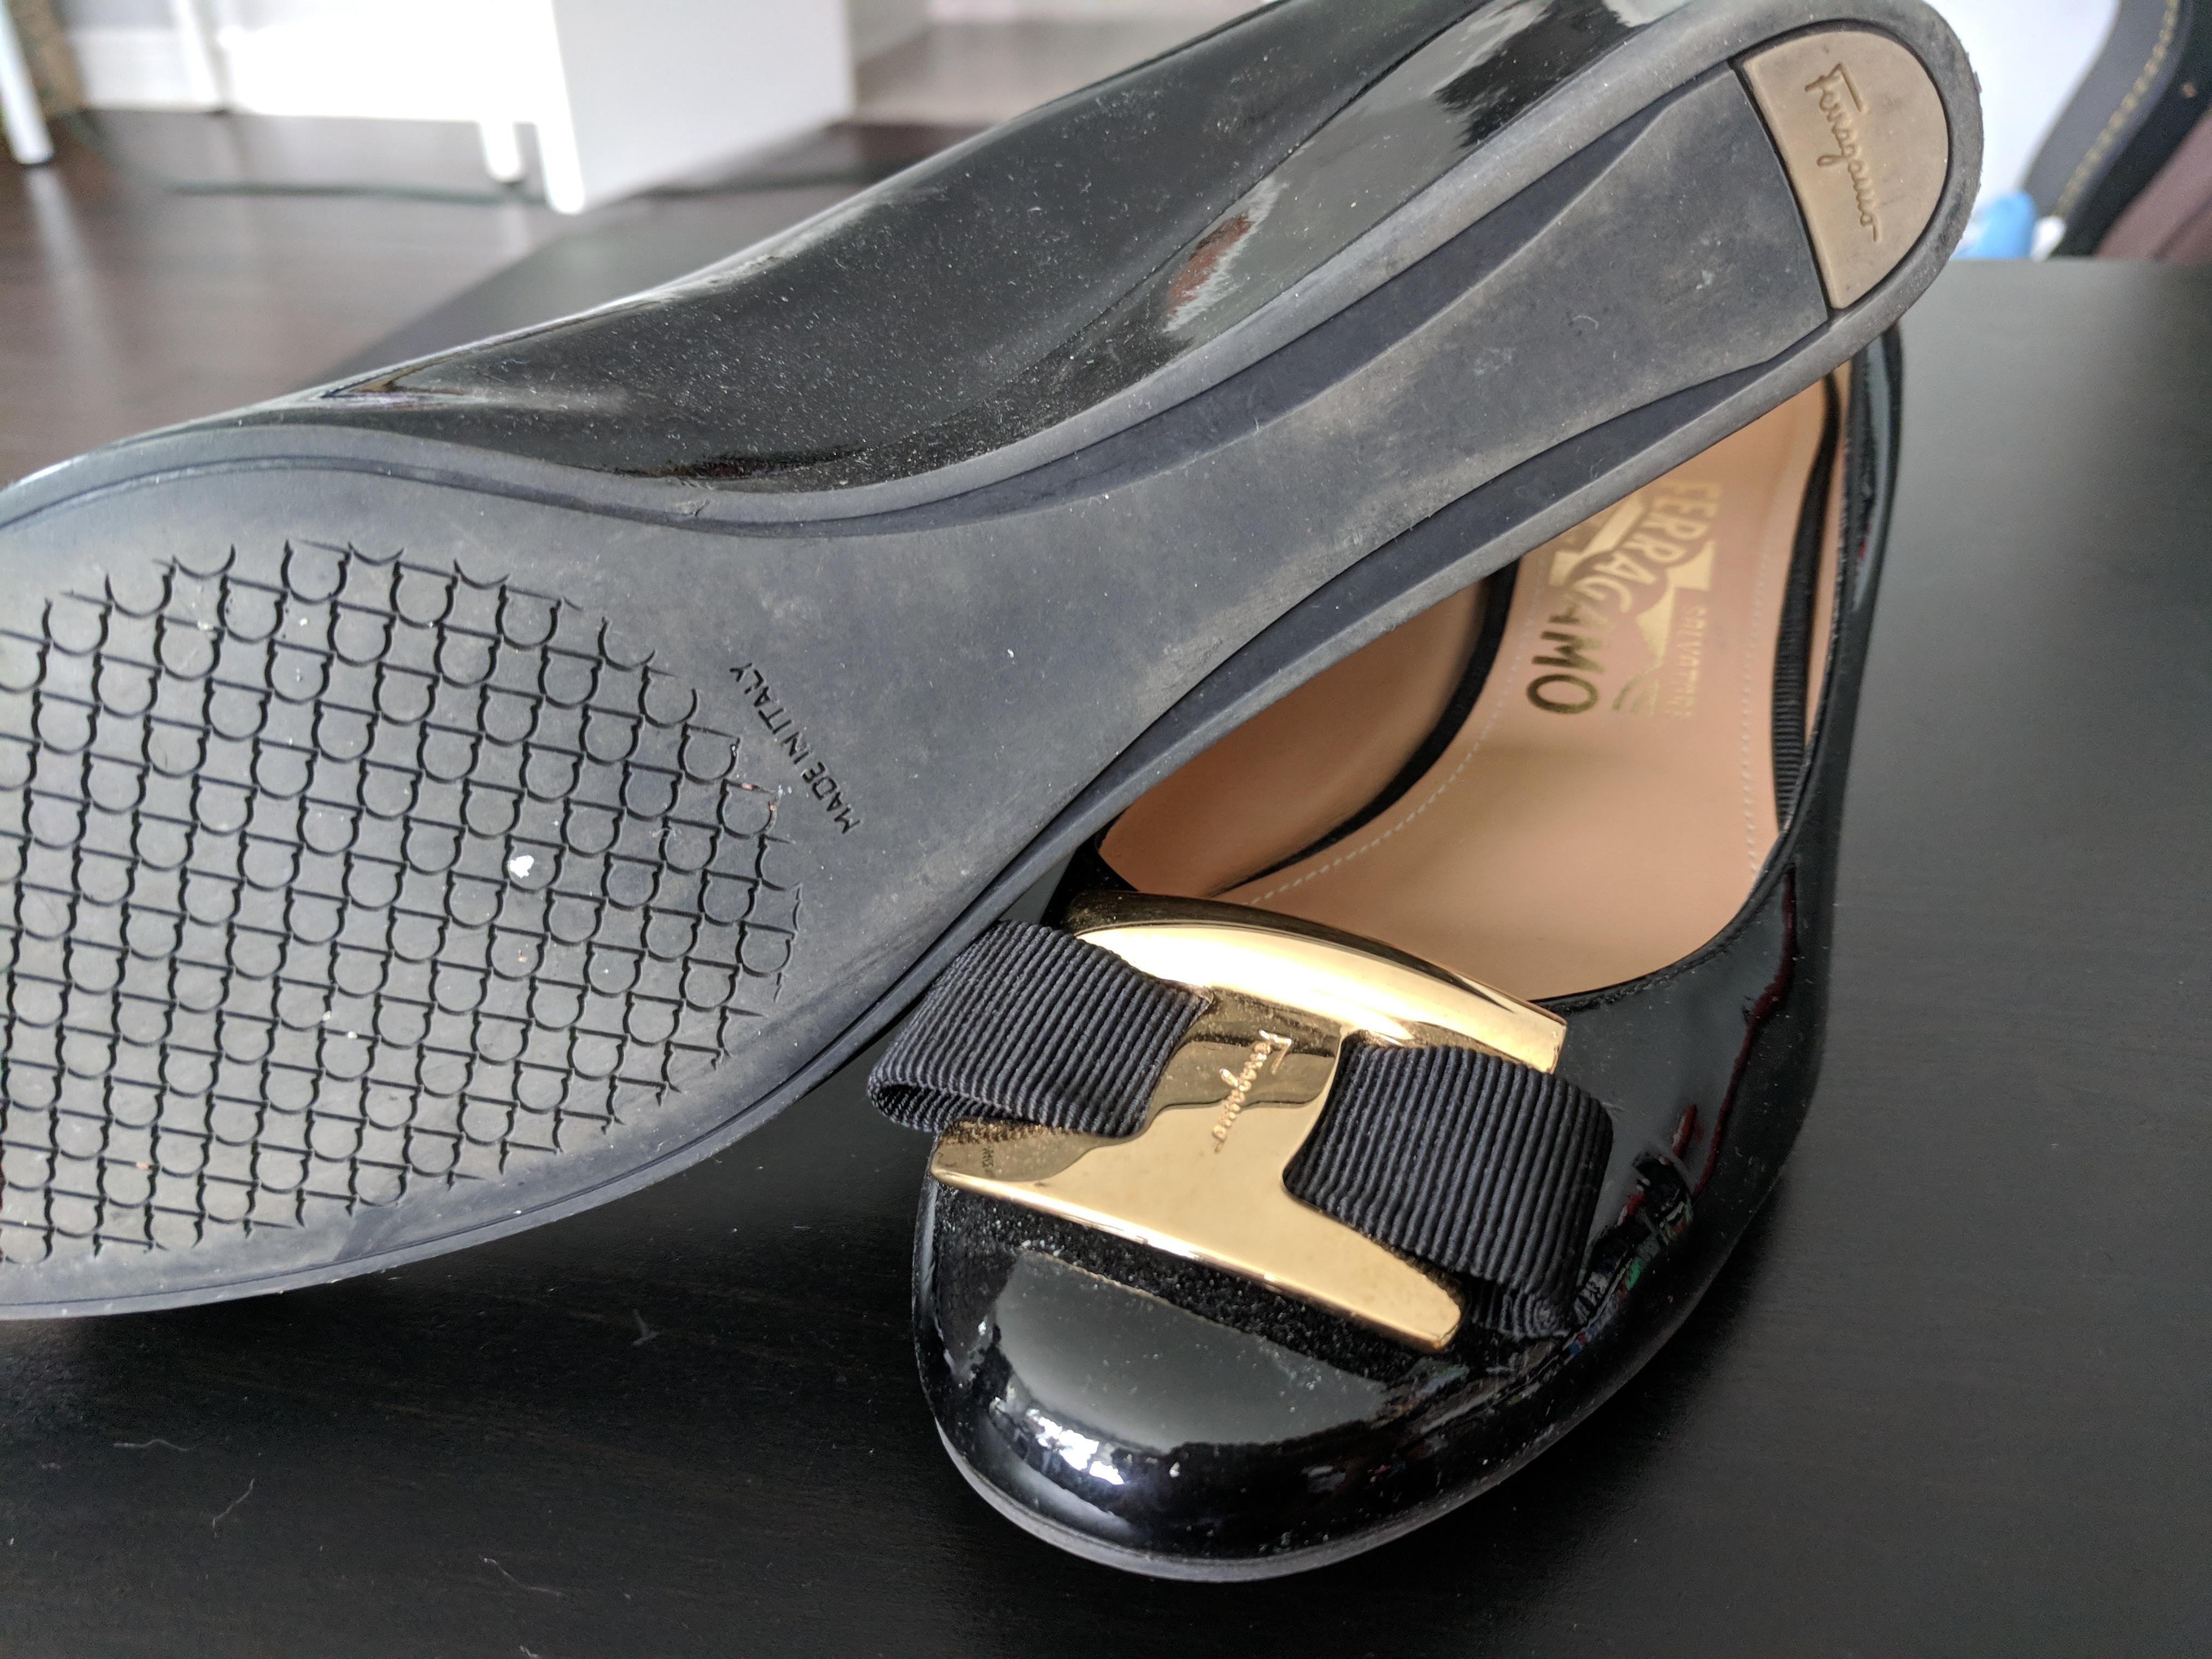 ae7f13b0b ... Salvatore Ferragamo Black Wedges Size US 7.5 7.5 7.5 Regular (M